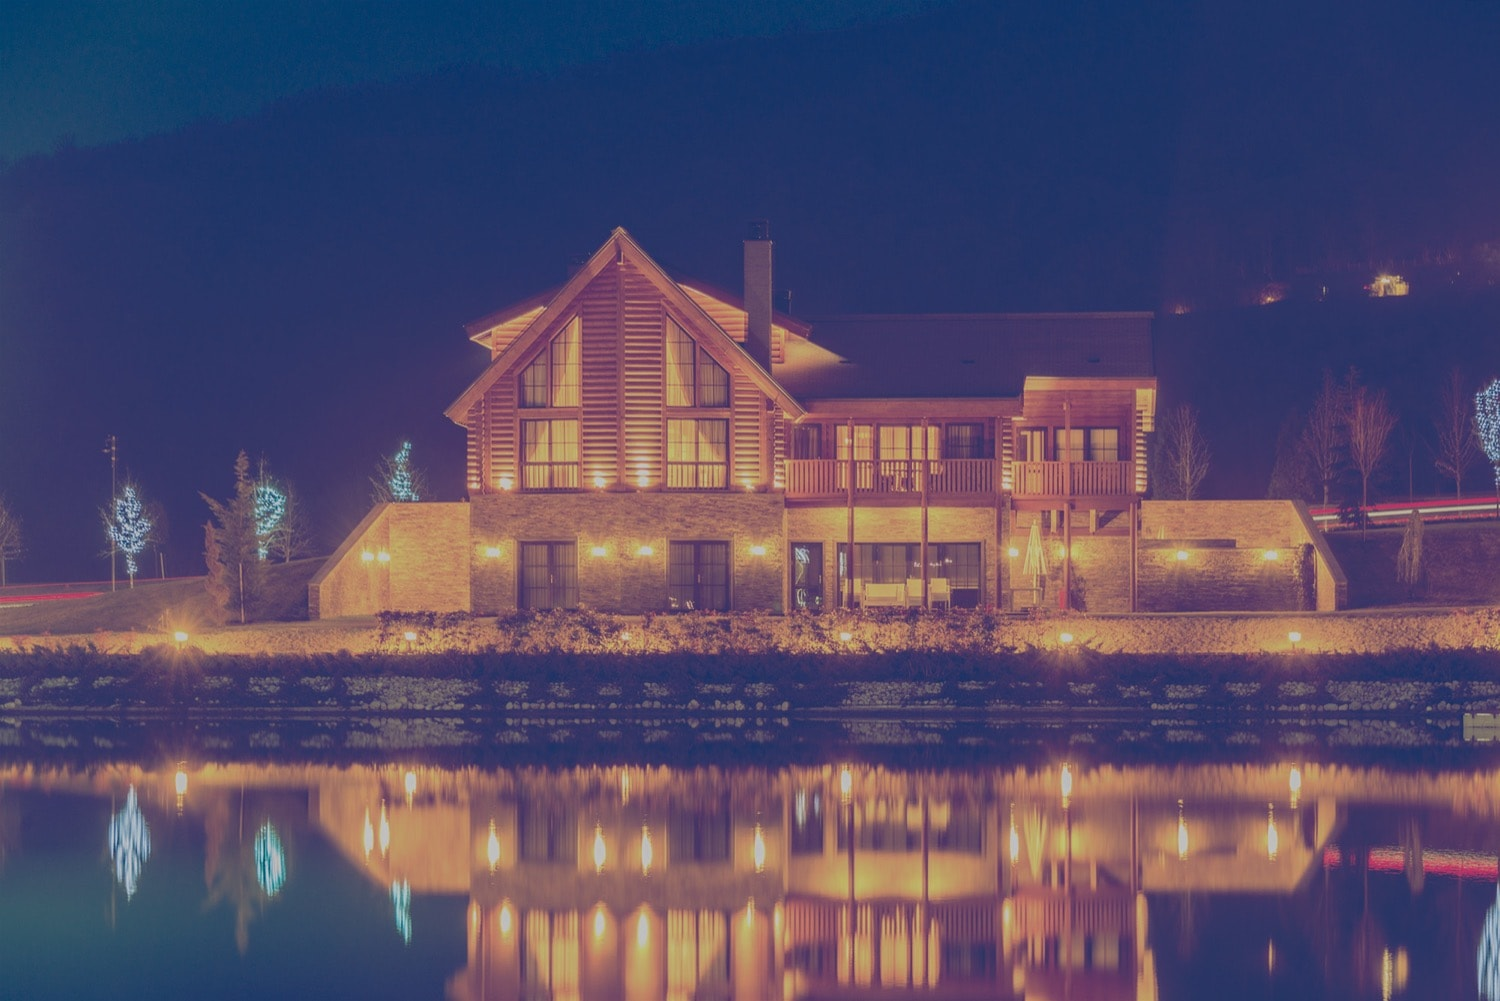 Large bed and breakfast home on a lake at night.